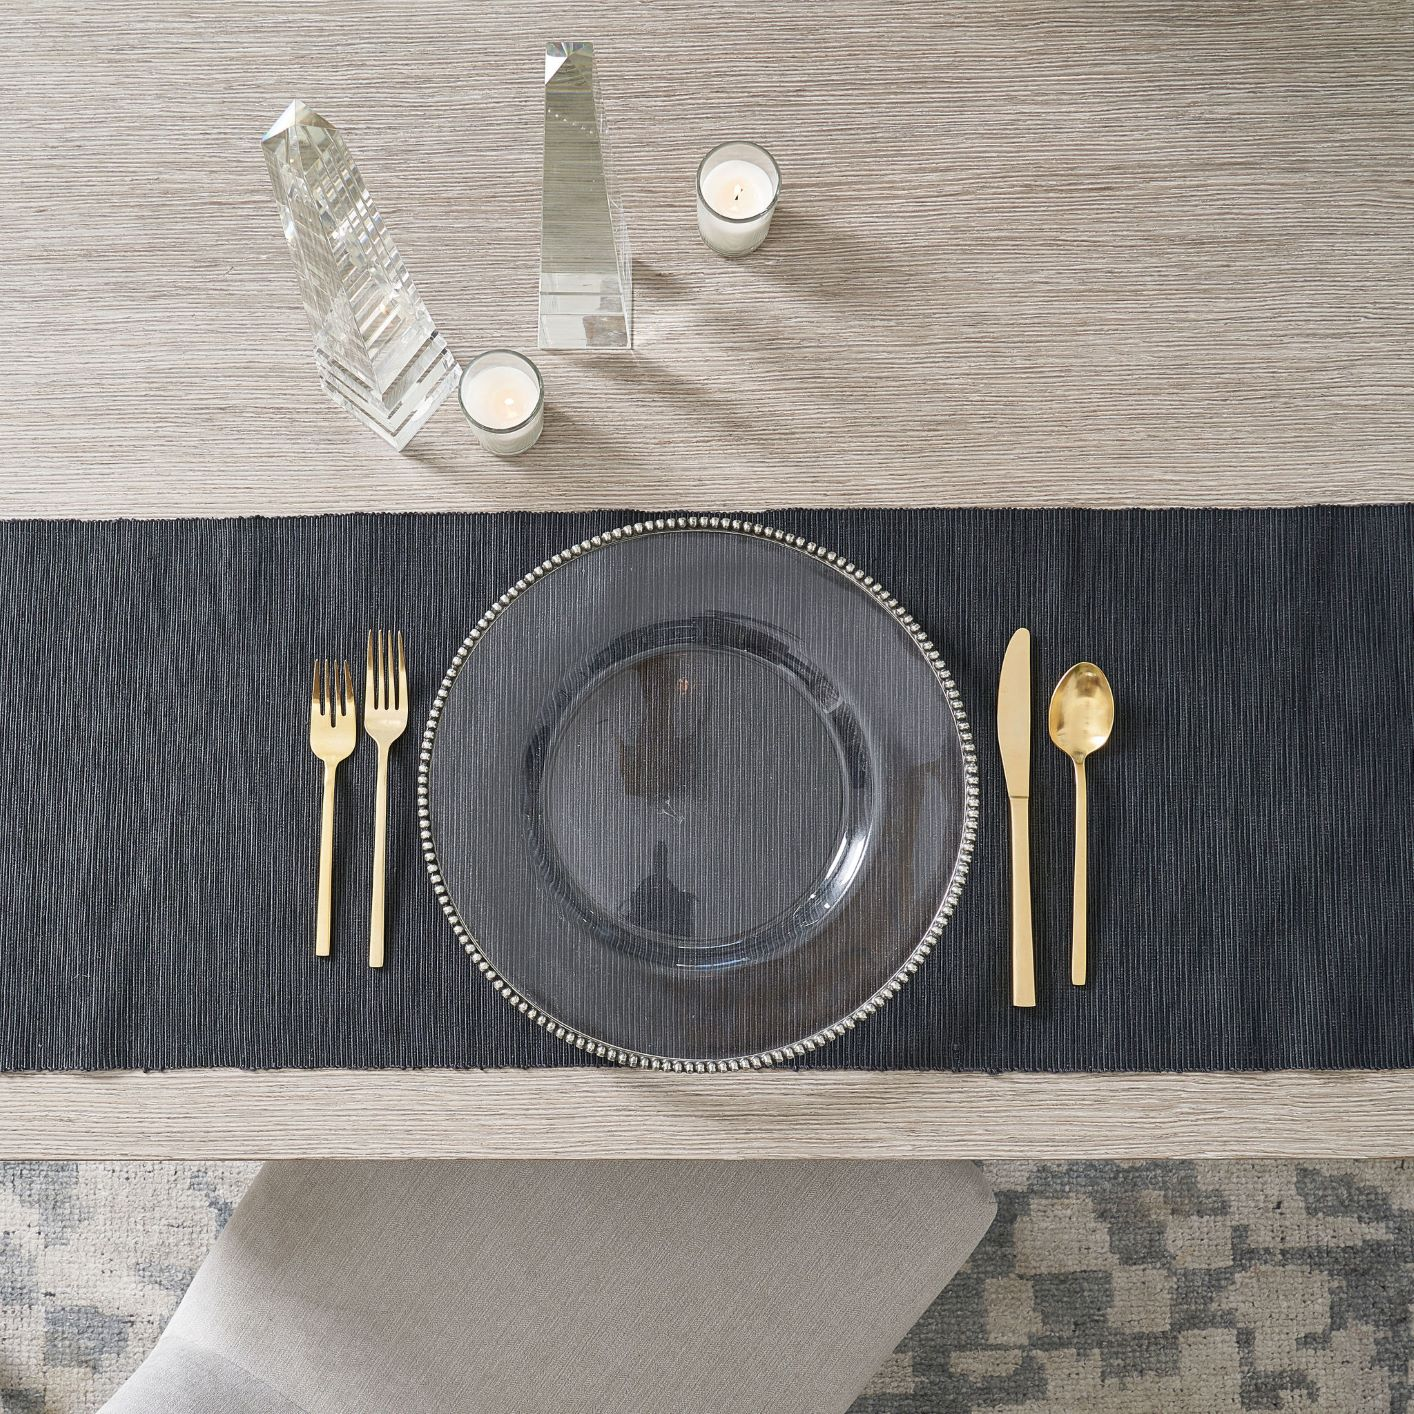 table with black tablecloth, plate and gold flatware